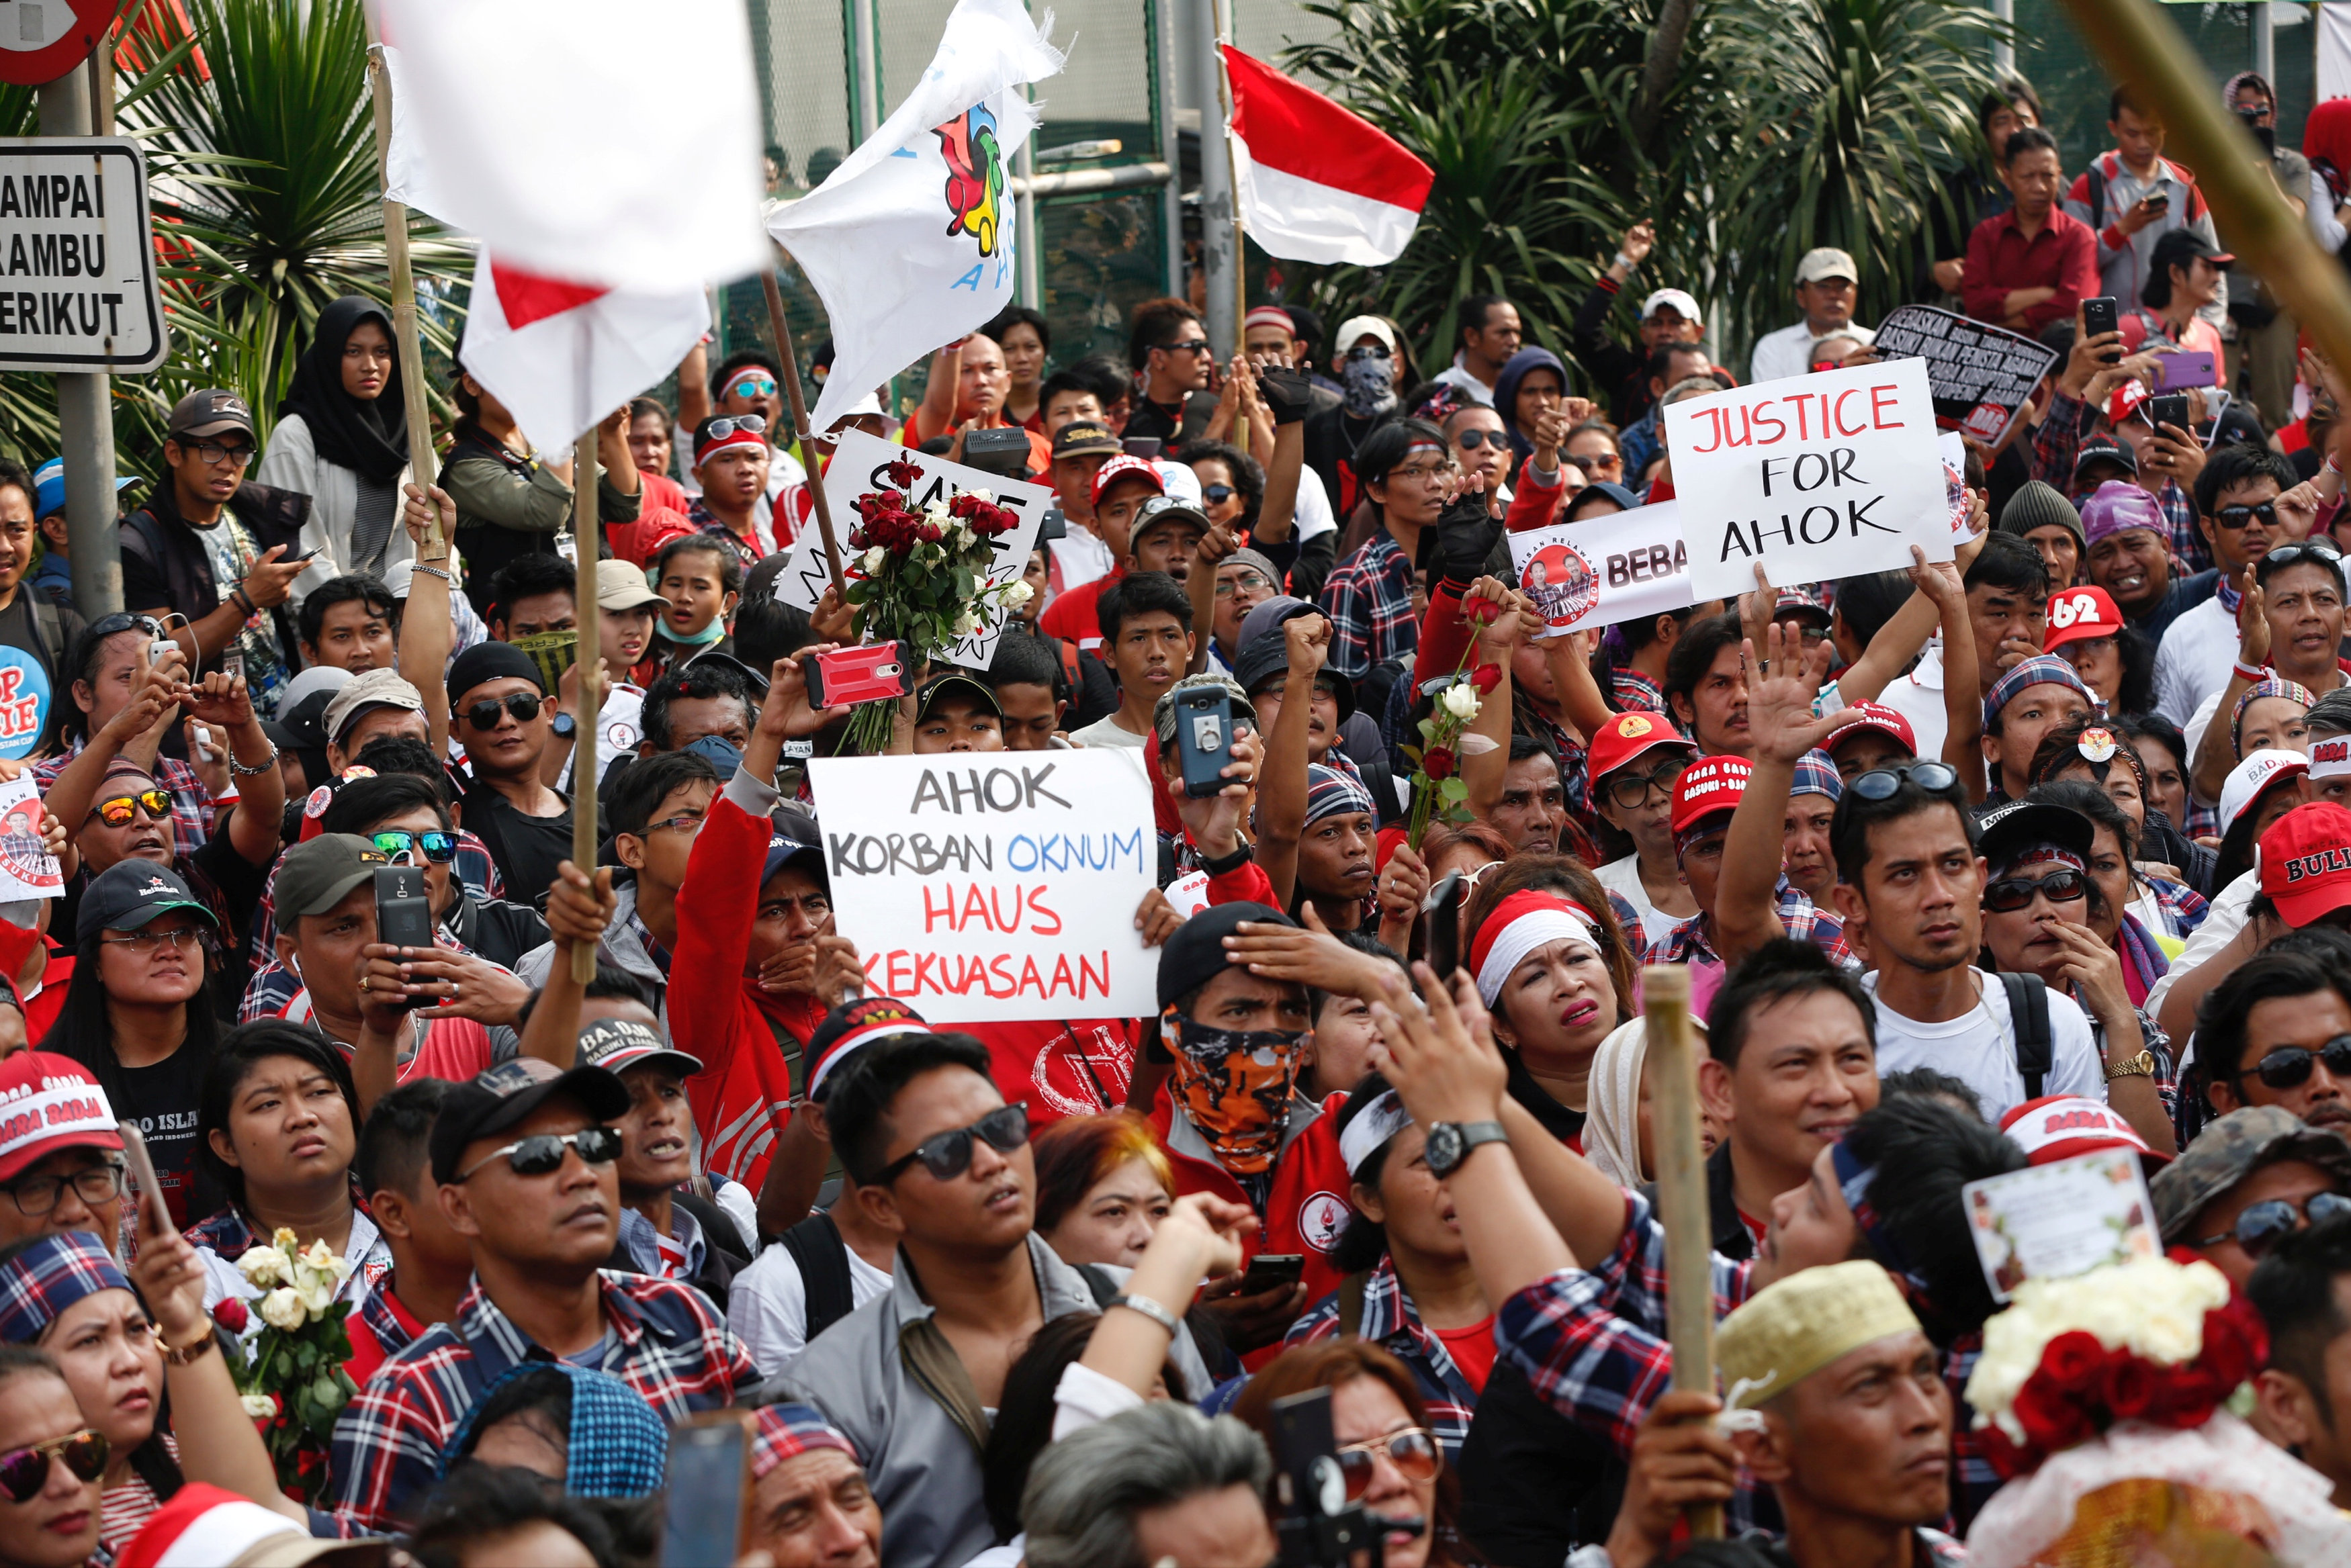 Supporters of Jakarta Governor Basuki Tjahaja Purnama, also known as Ahok, stage a protest outside Cipinang Prison, where he was taken following his conviction of blasphemy, in Jakarta, Indonesia May 9, 2017. REUTERS/Darren Whiteside